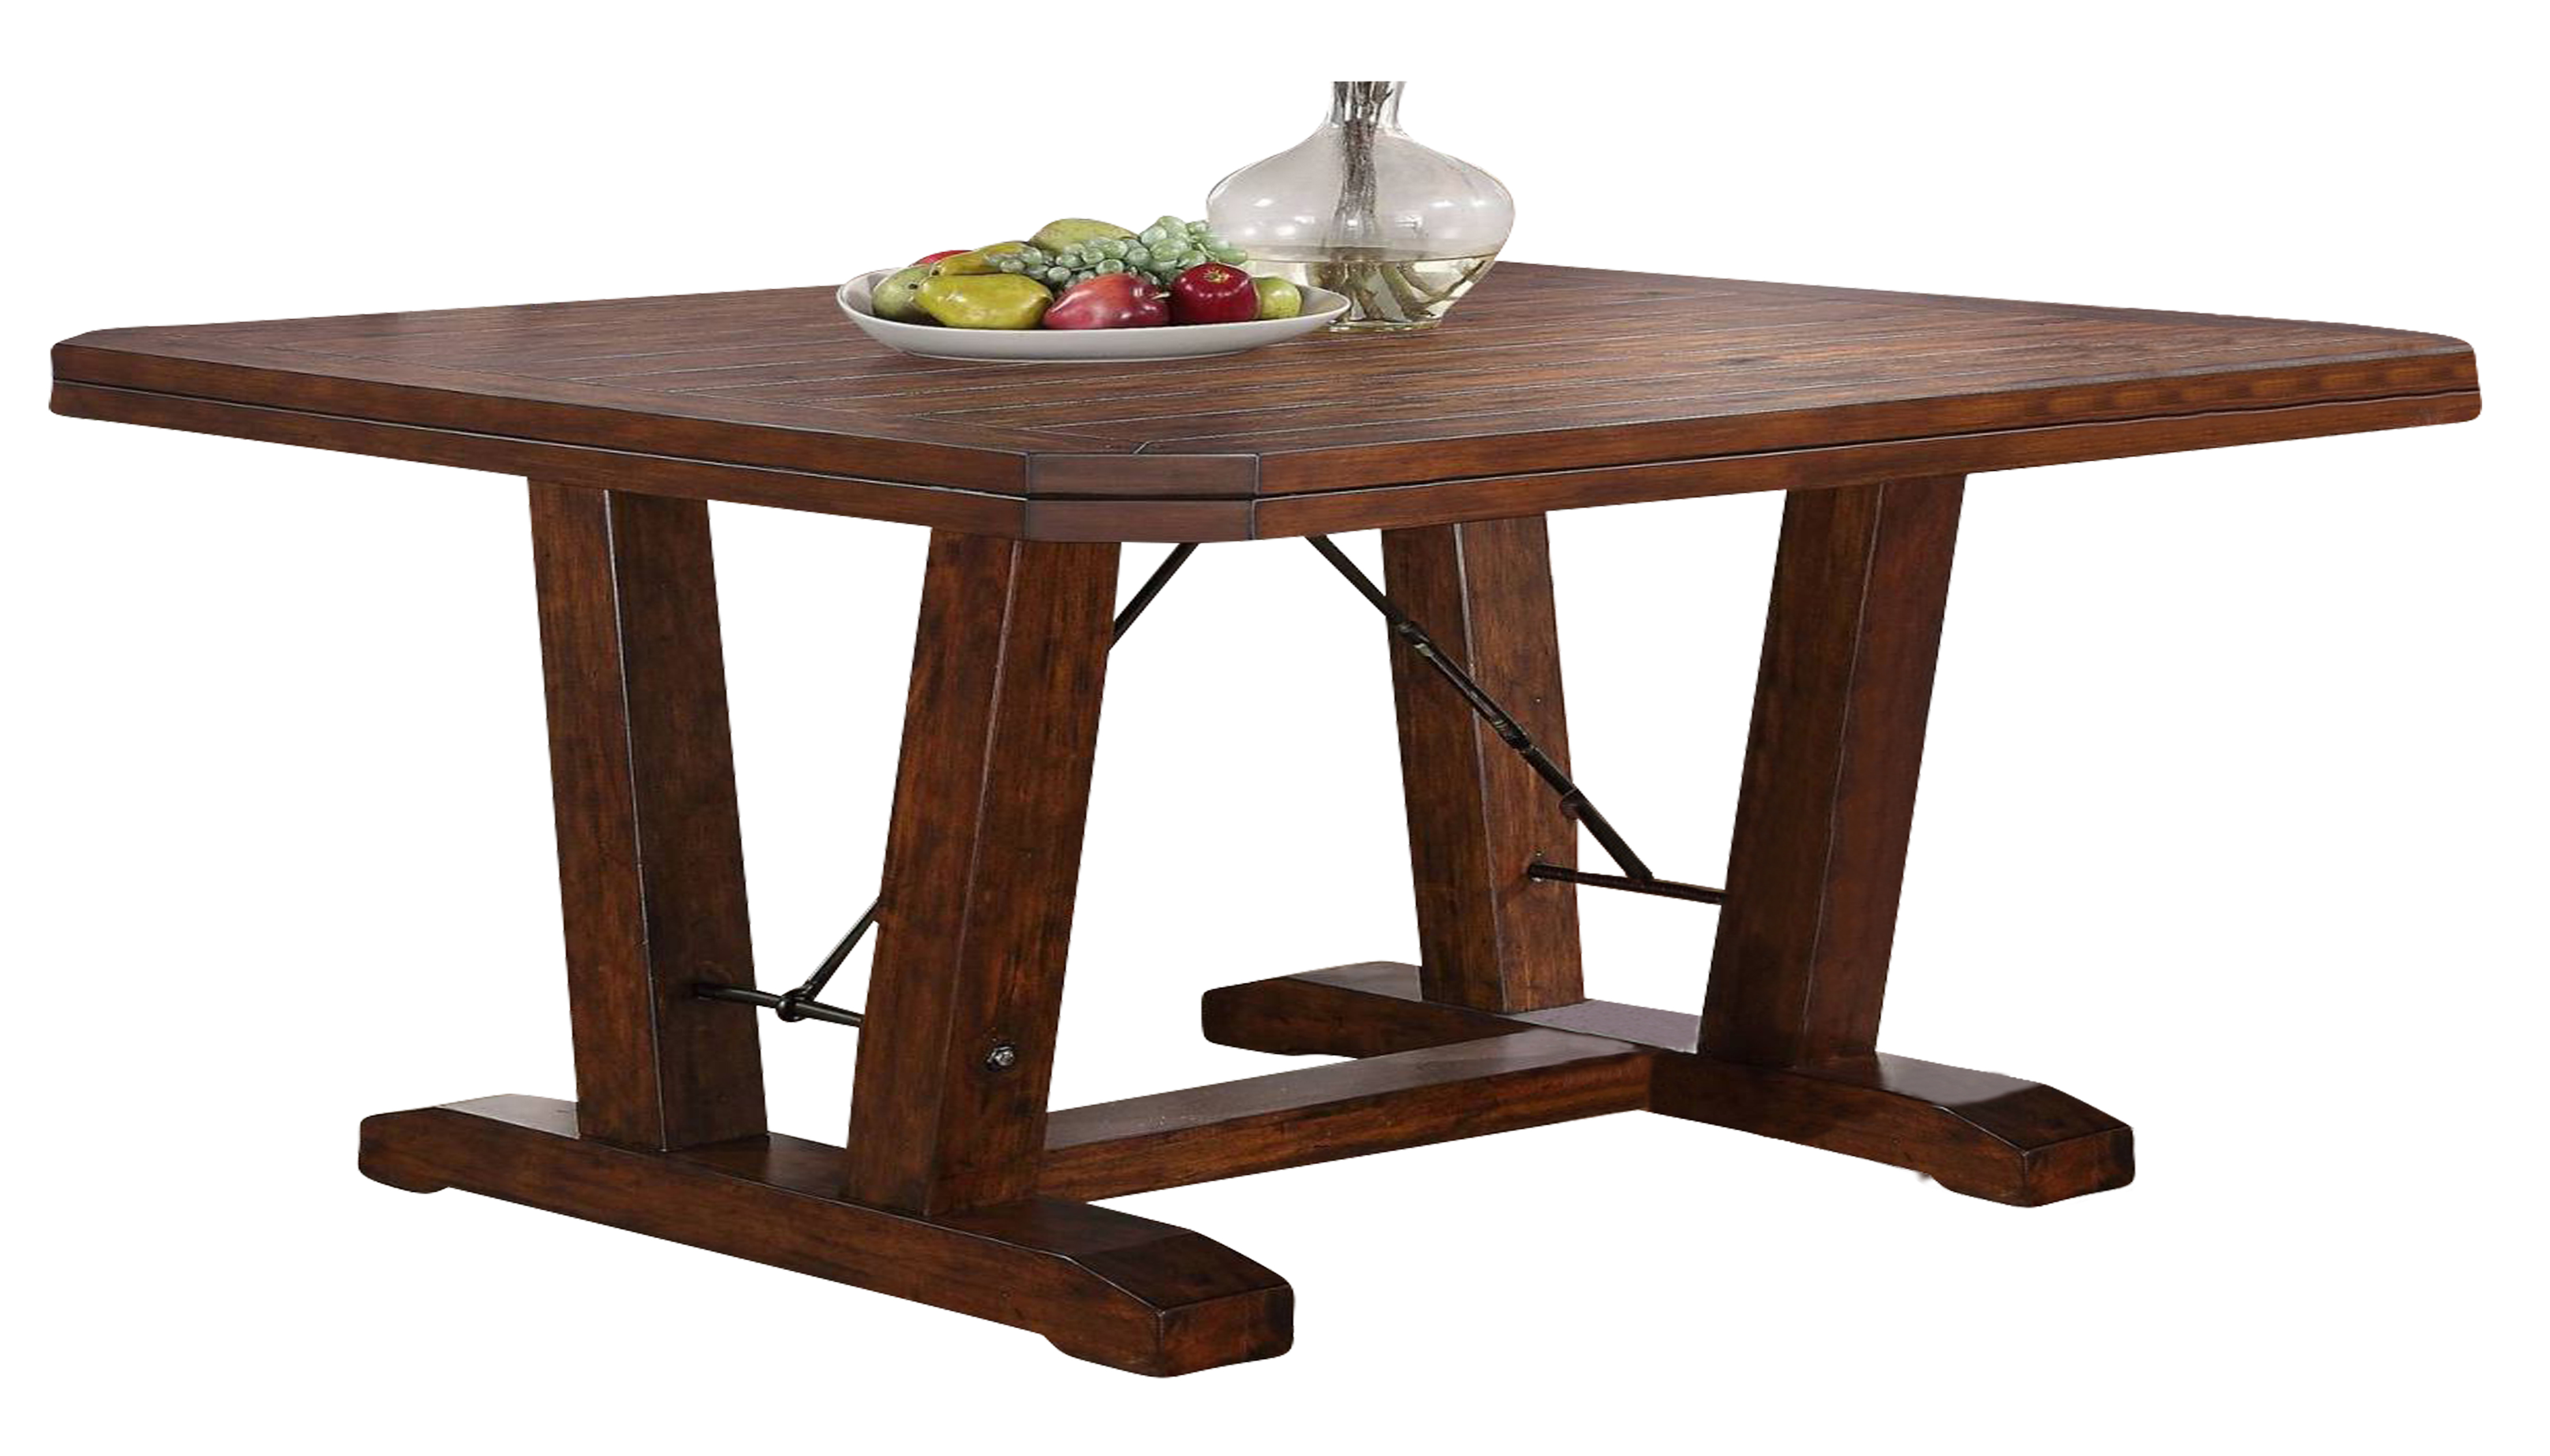 New Classic Furniture Lanesboro Dining Table In Distressed